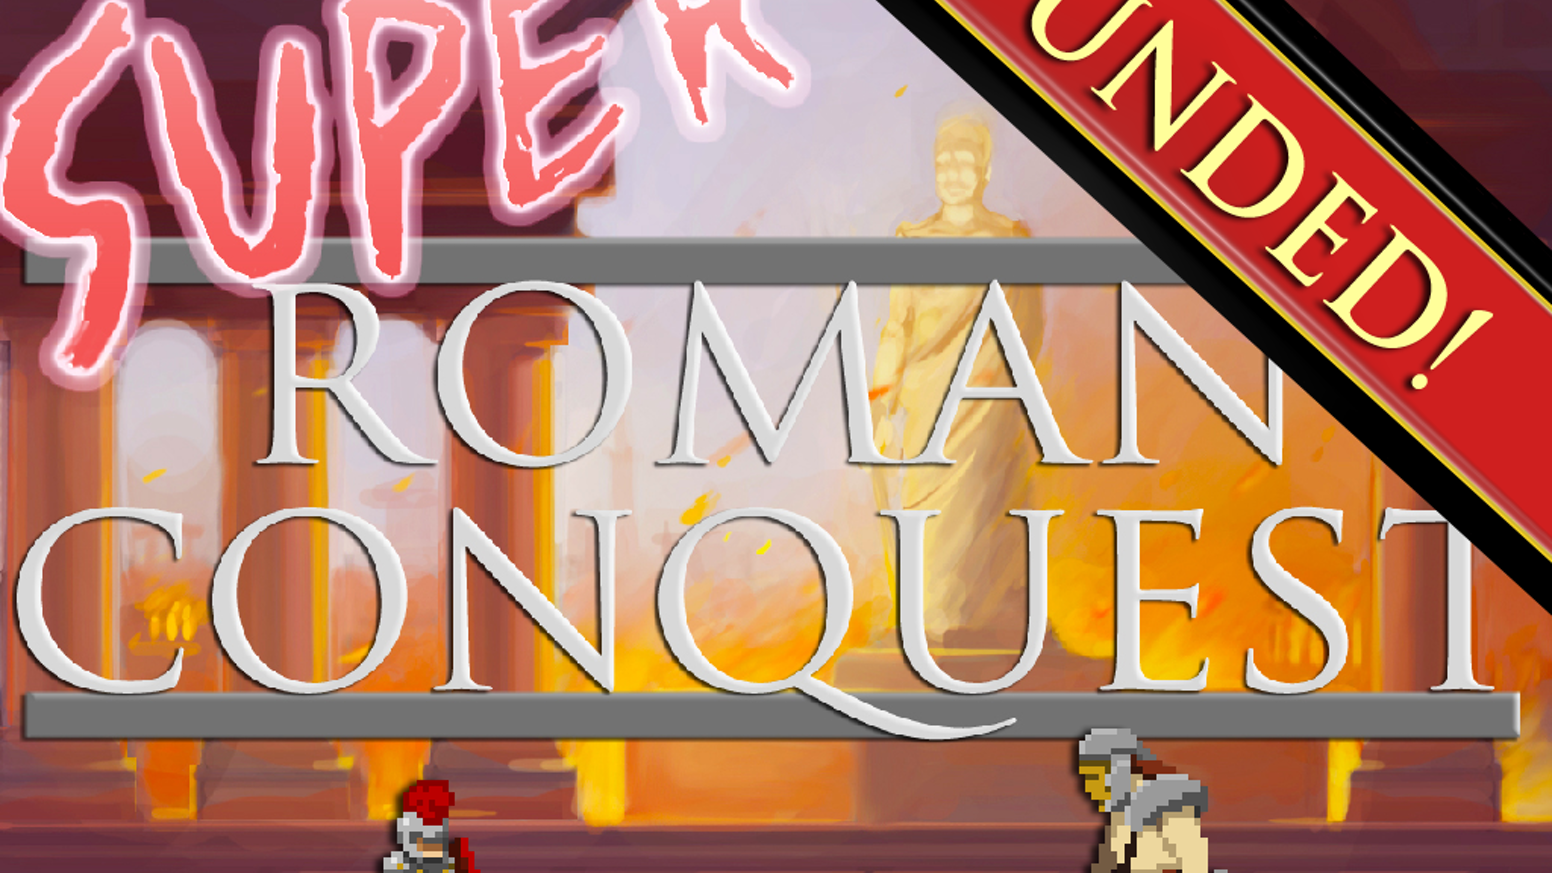 Super Roman Conquest is a retro side-scrolling RTS that takes place in a multi-layered, 3D world set in Ancient Rome.